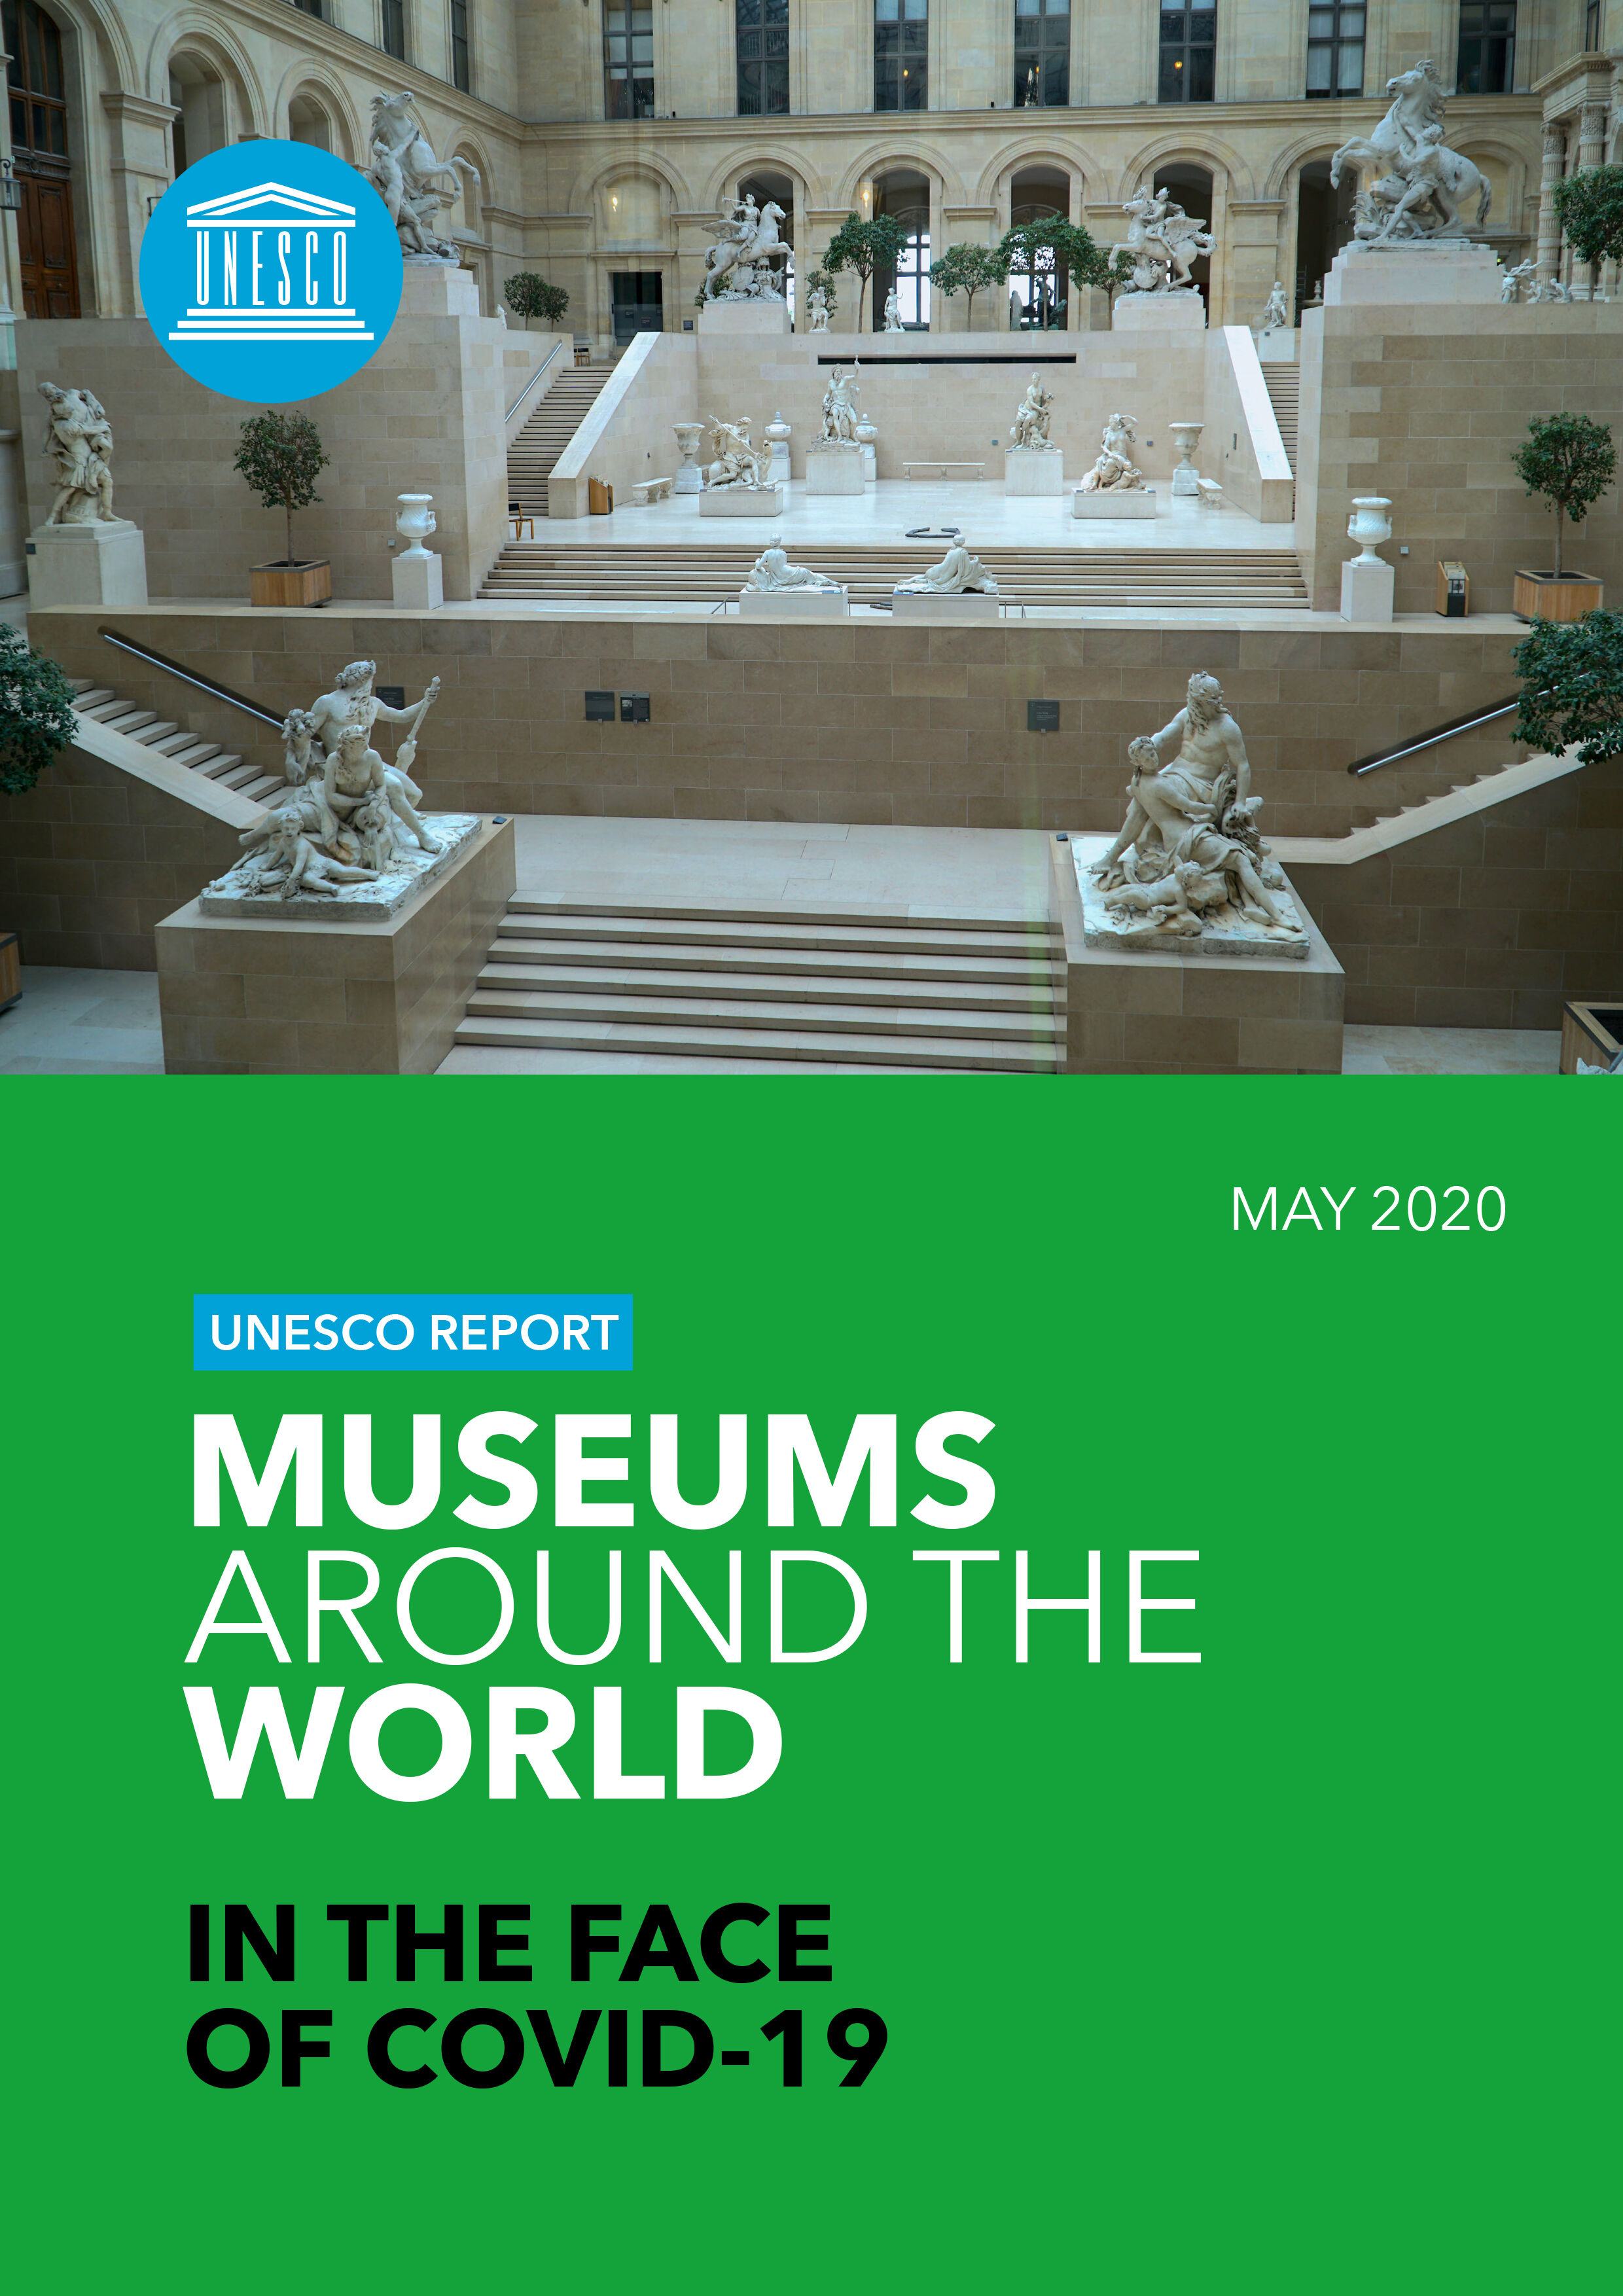 REPORT Cover - Museums Around the World in the Face of COVID-19 - May 2020 (UNESCO)